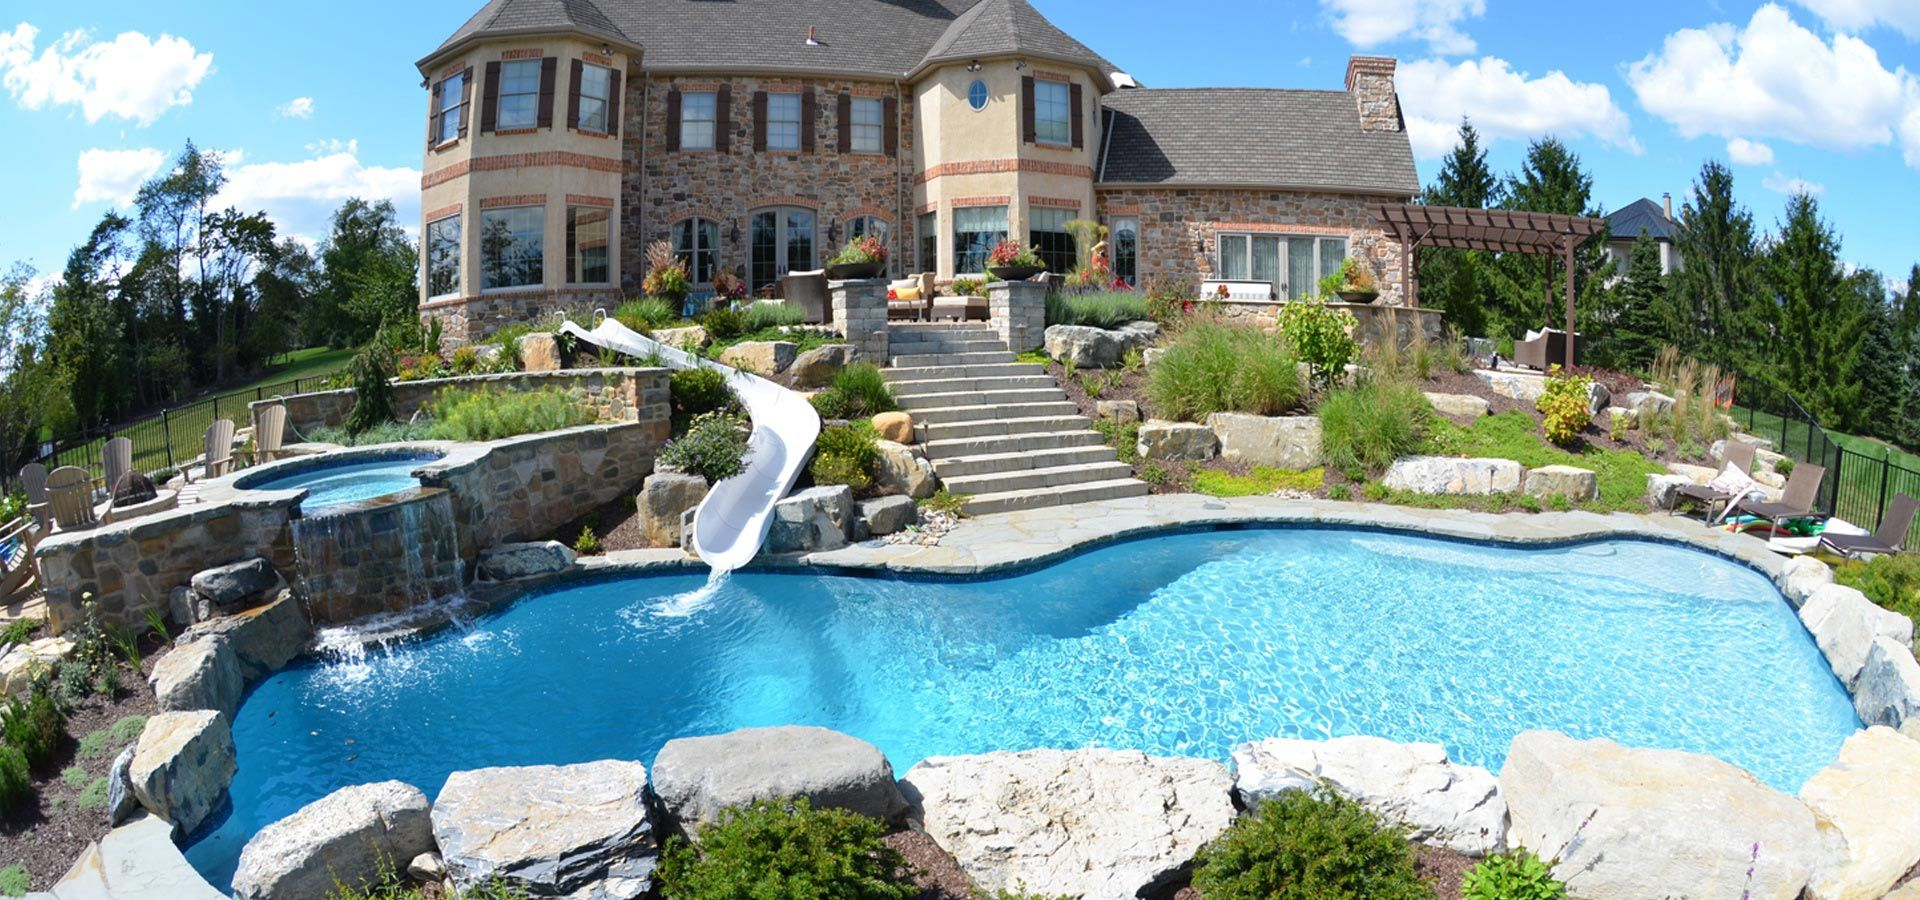 Custom pool with waterslide spa diamond brite finish Swimming pool styles designs